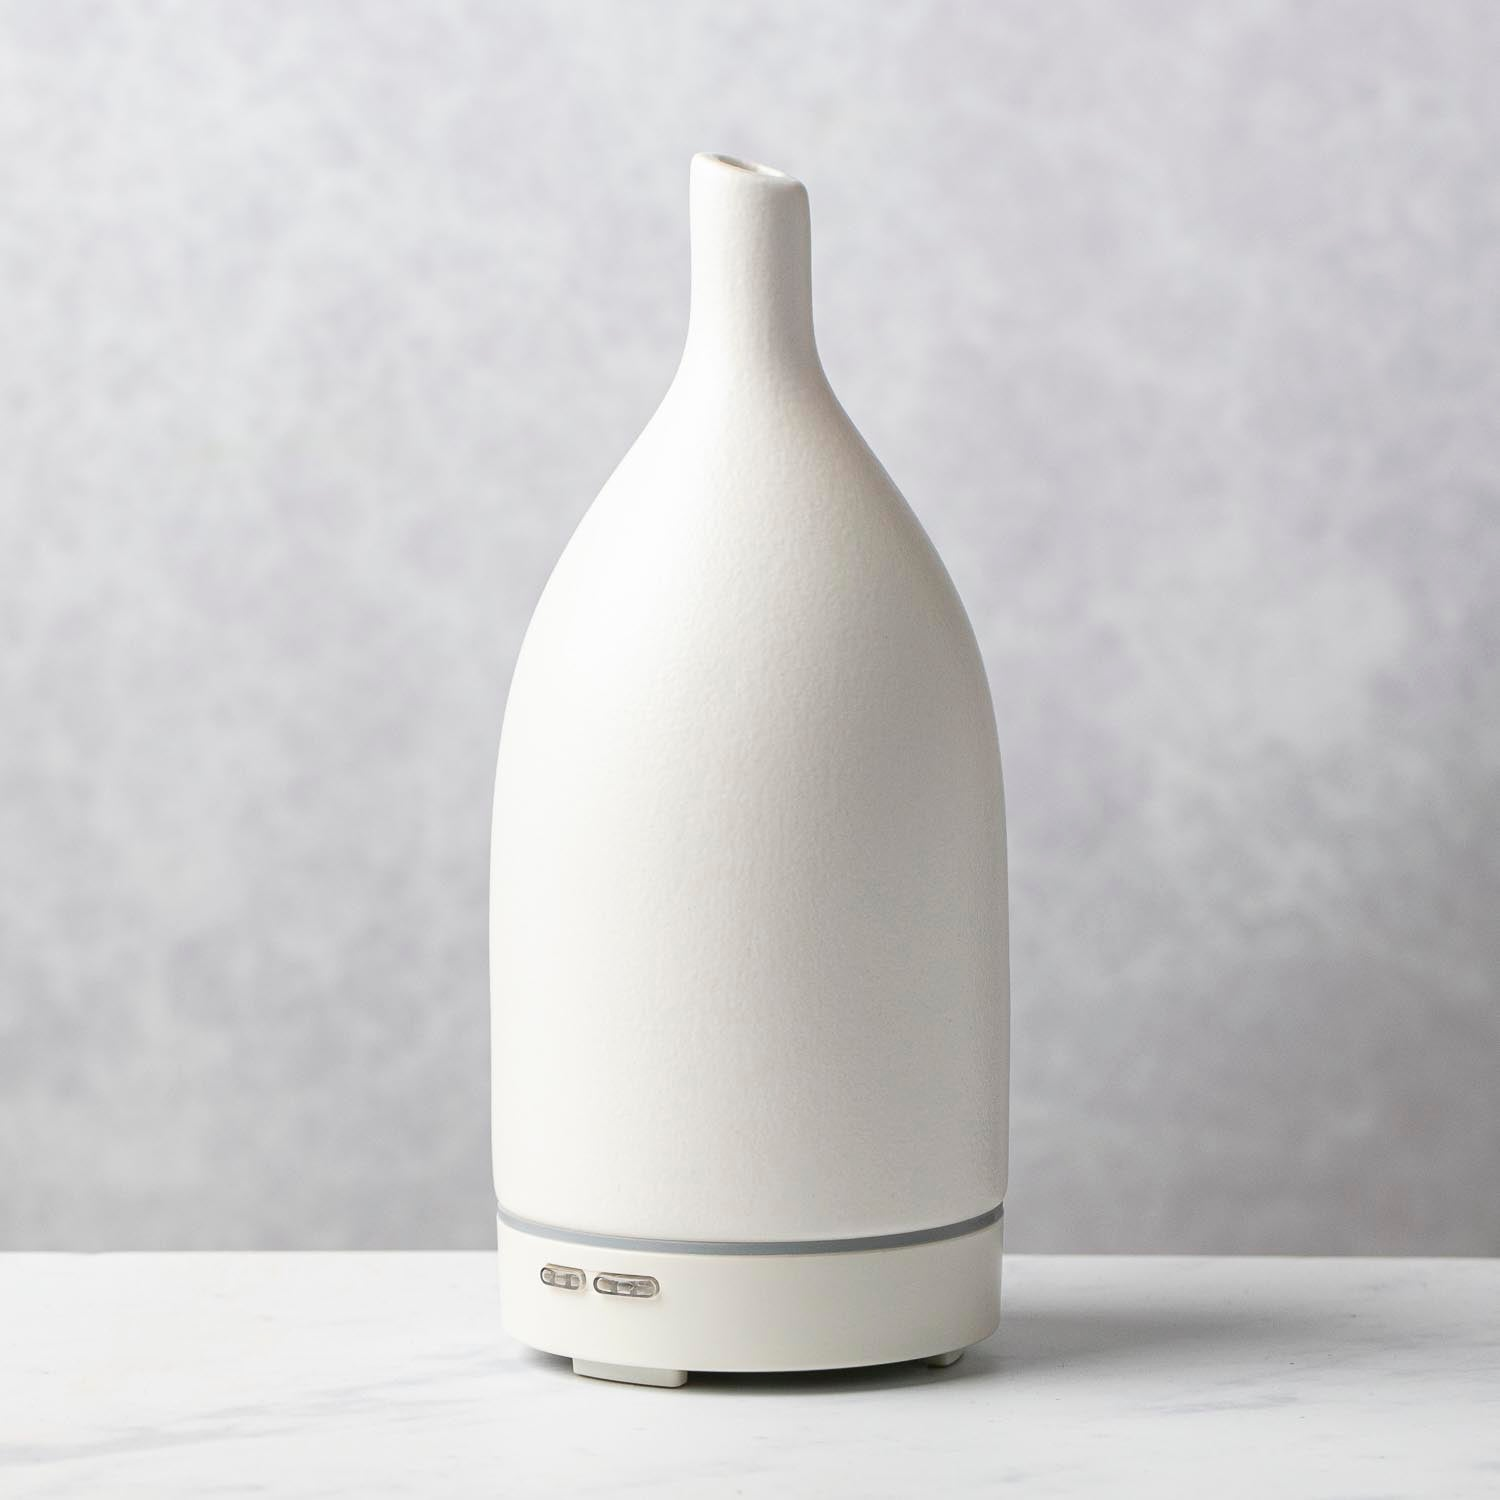 PORCELAIN ELECTRIC DIFFUSER FOR ESSENTIAL OILS